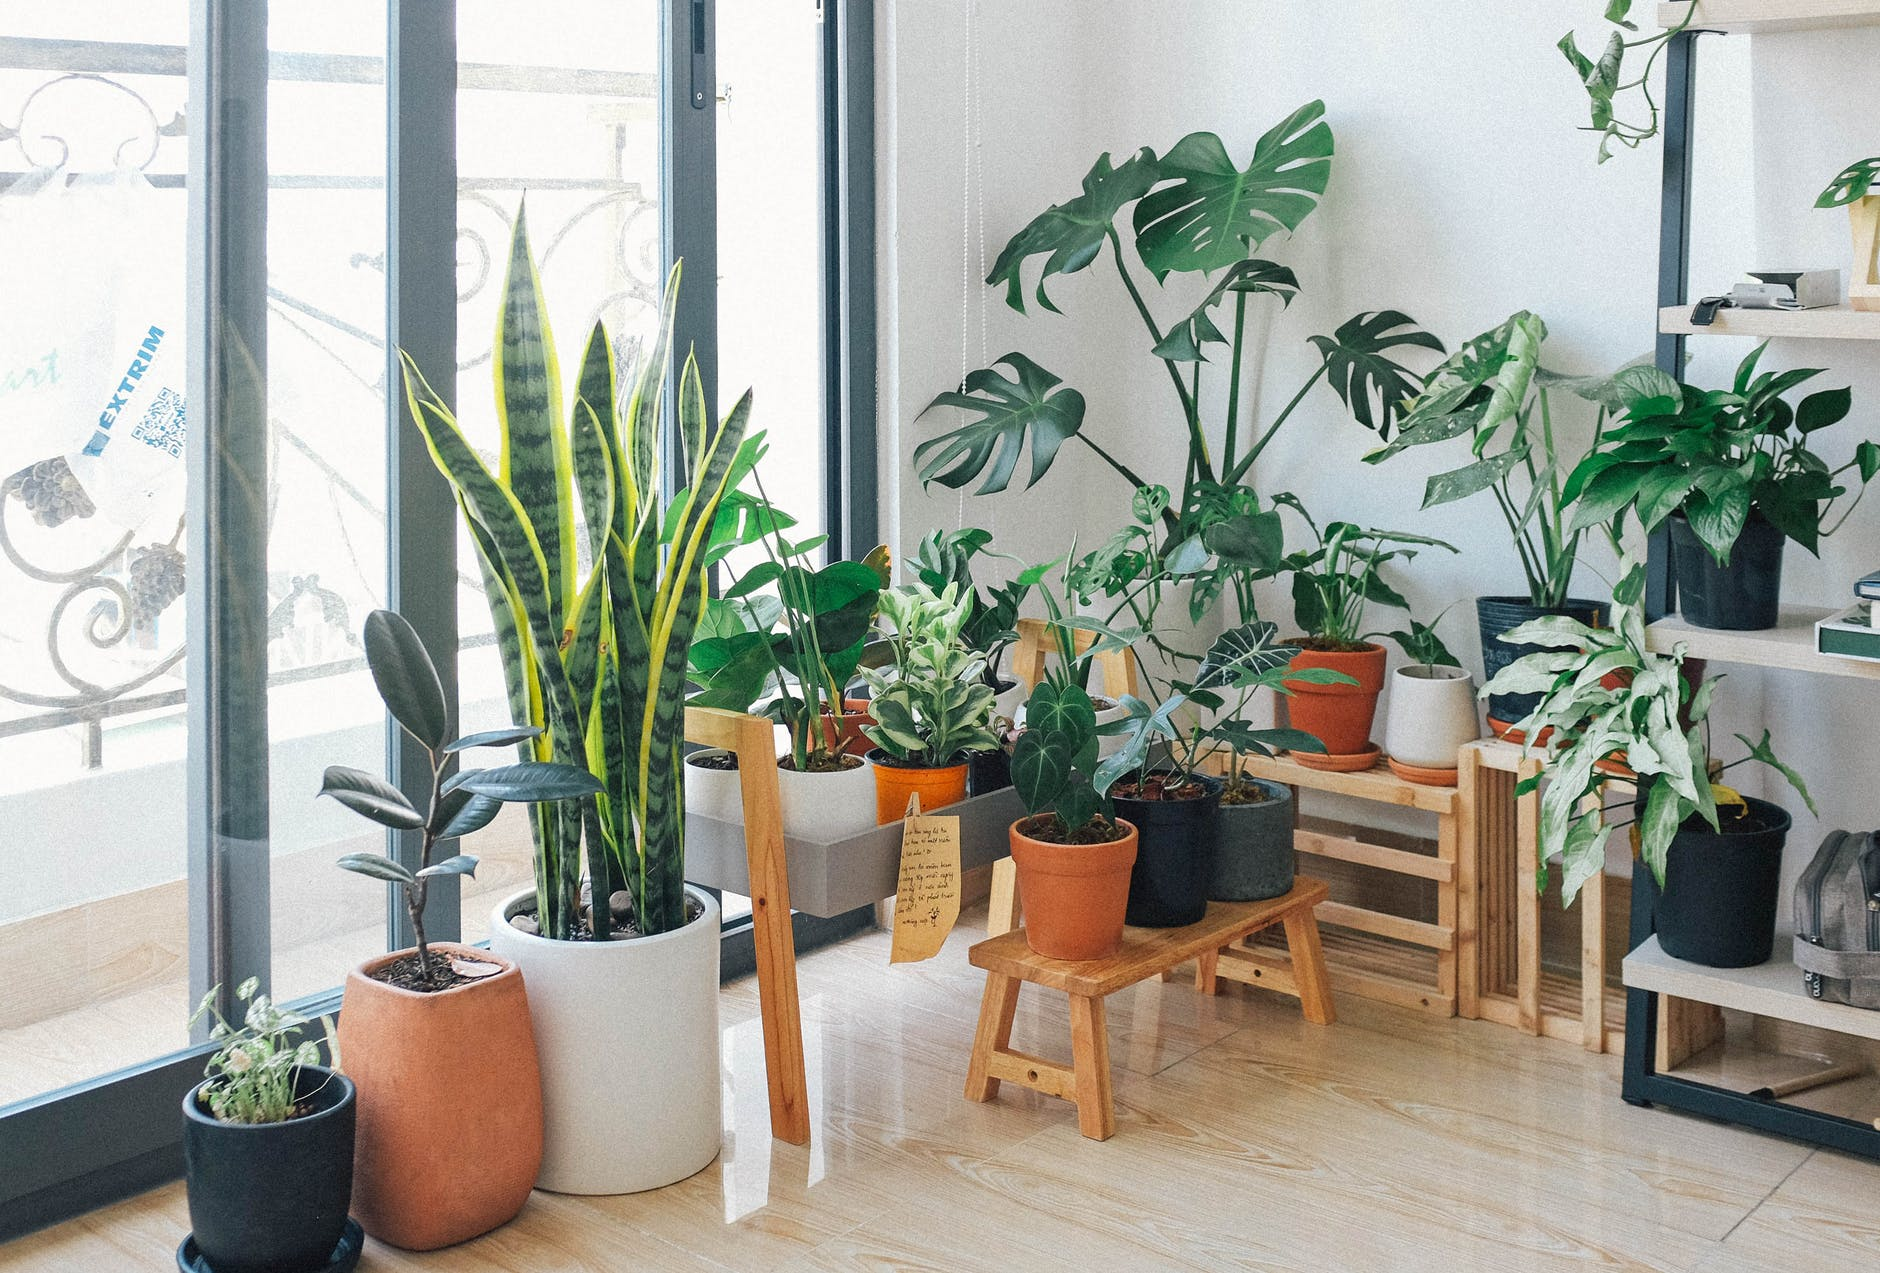 Most Demanding Indoor Plants to Liven Up Your Home Décor